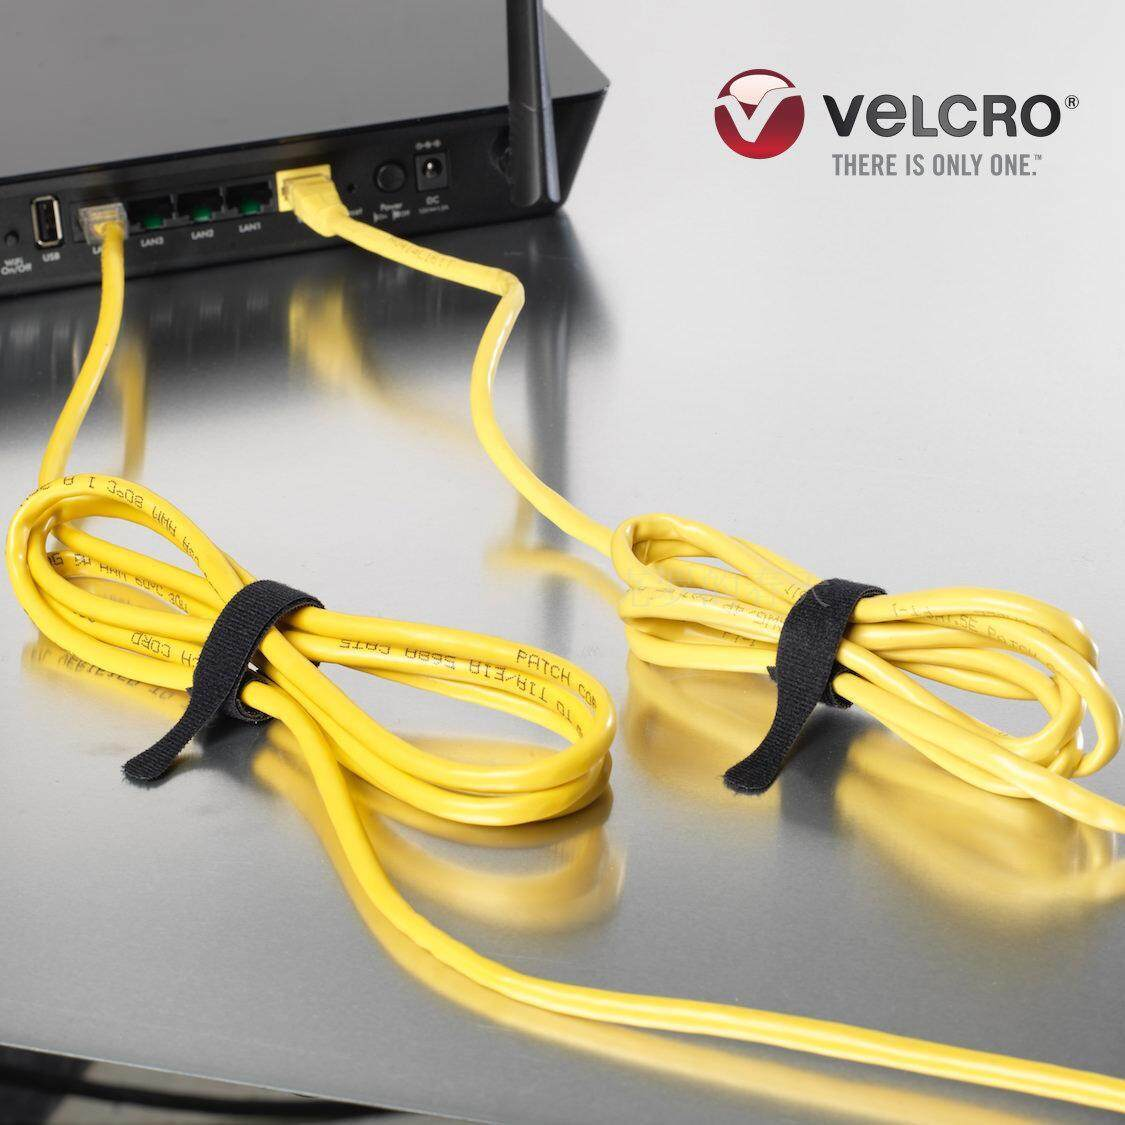 Import Ultra-Thin Velcro Cable Tie Velcro Brand VELCRO Brand Line Belt Bingding Line Natural 20X1.2 Cm